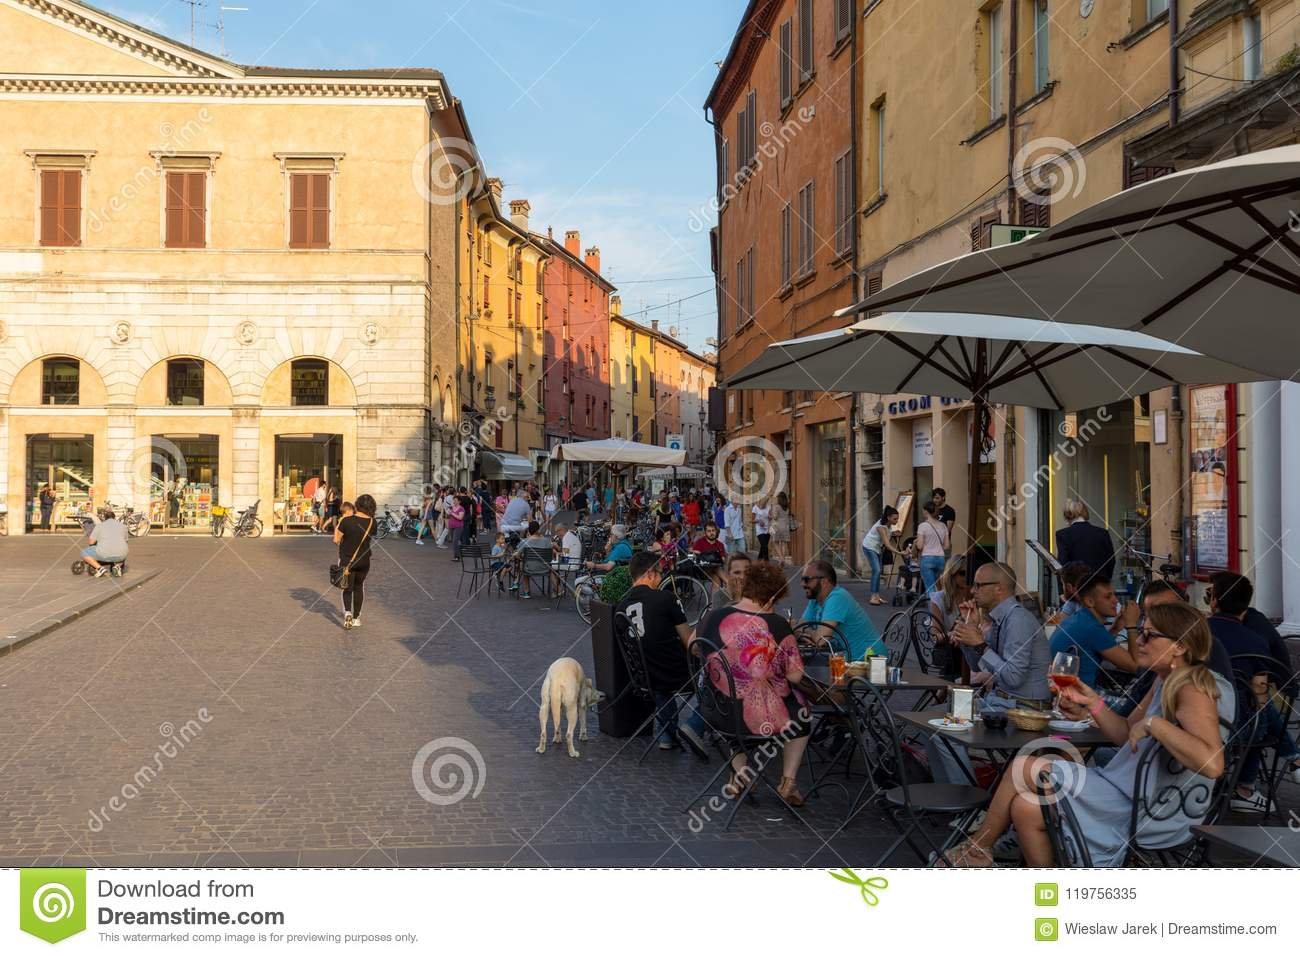 Piazza Trento Trieste in Ferrara, Italy.Square in the historic center of Ferrara, a meeting place of citizenship and tourists